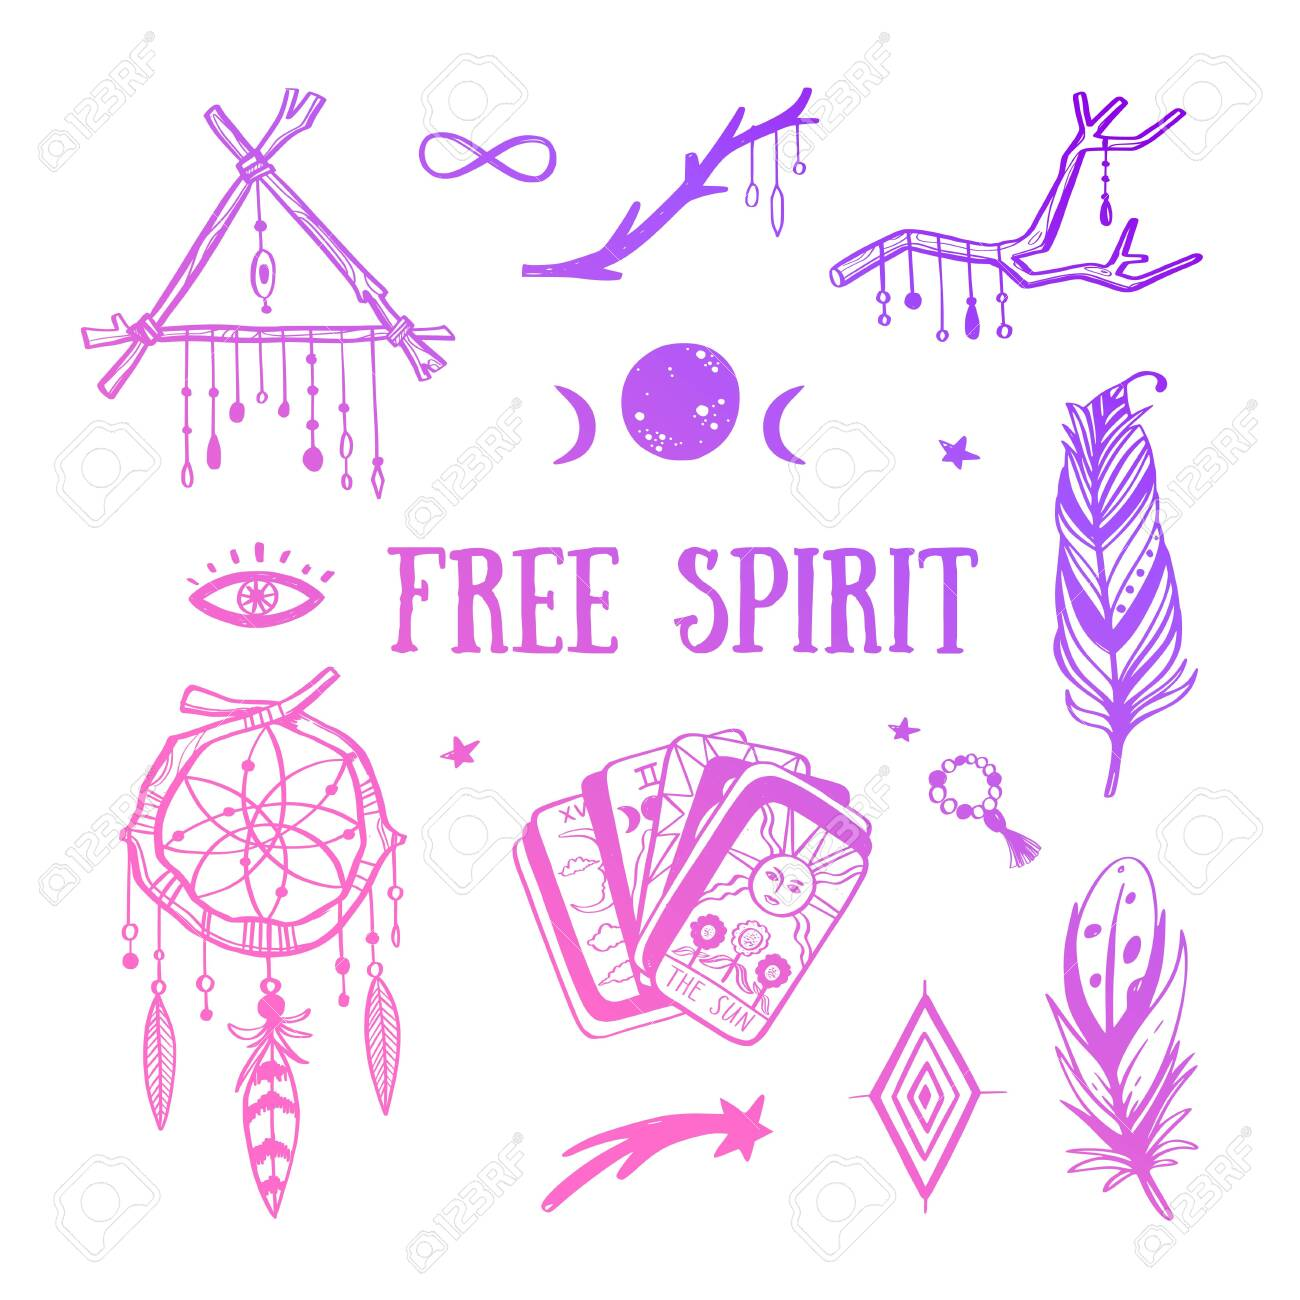 Free Spirit Boho Vector Collection Dreamcatchers Feathers Royalty Free Cliparts Vectors And Stock Illustration Image 154083915